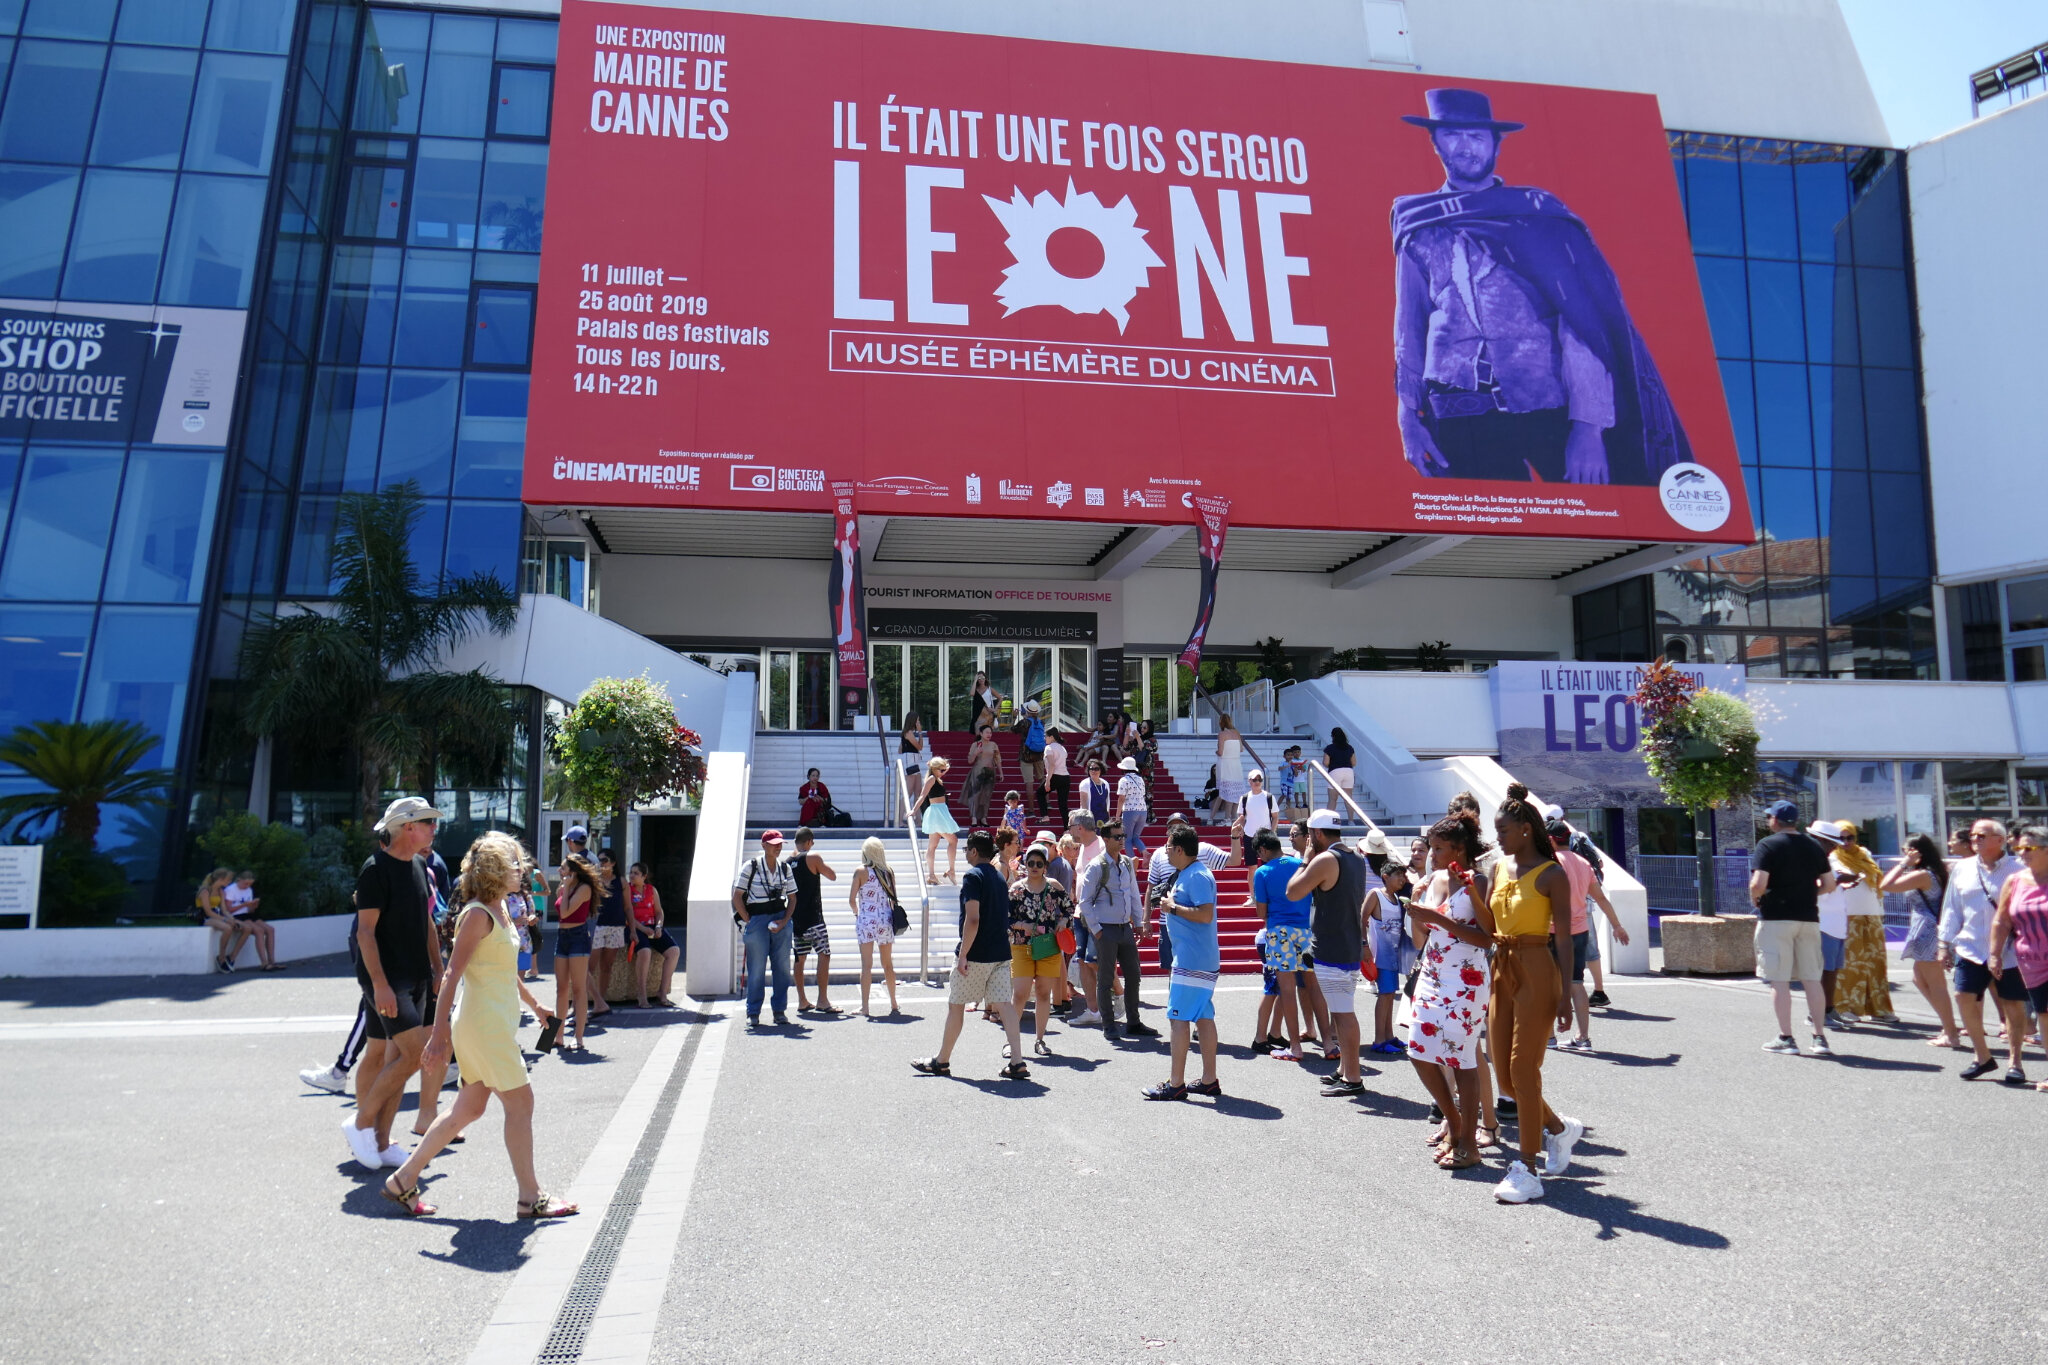 07 16 CANNES (4)